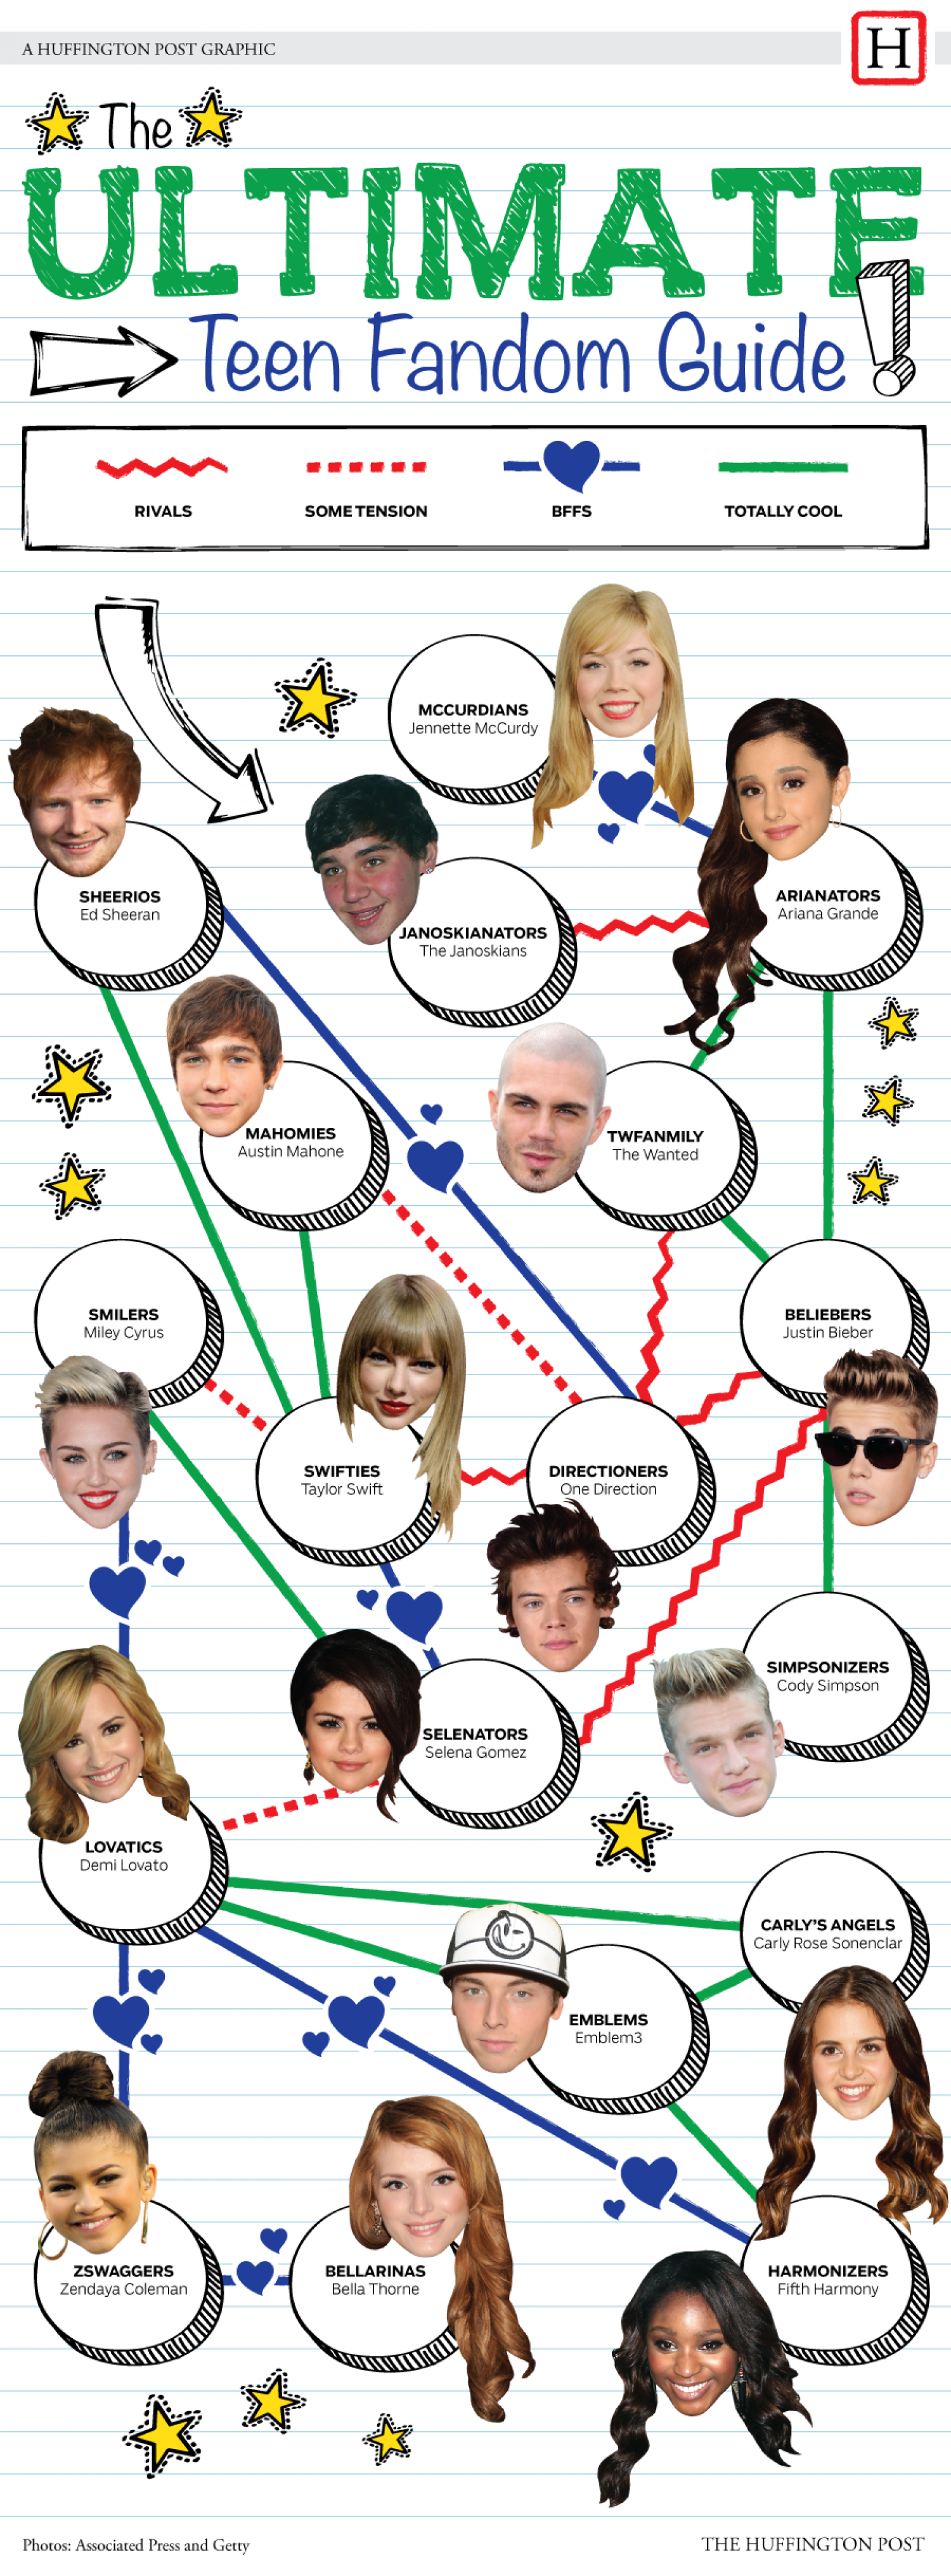 The Ultimate Teen Fandom Guide Infographic